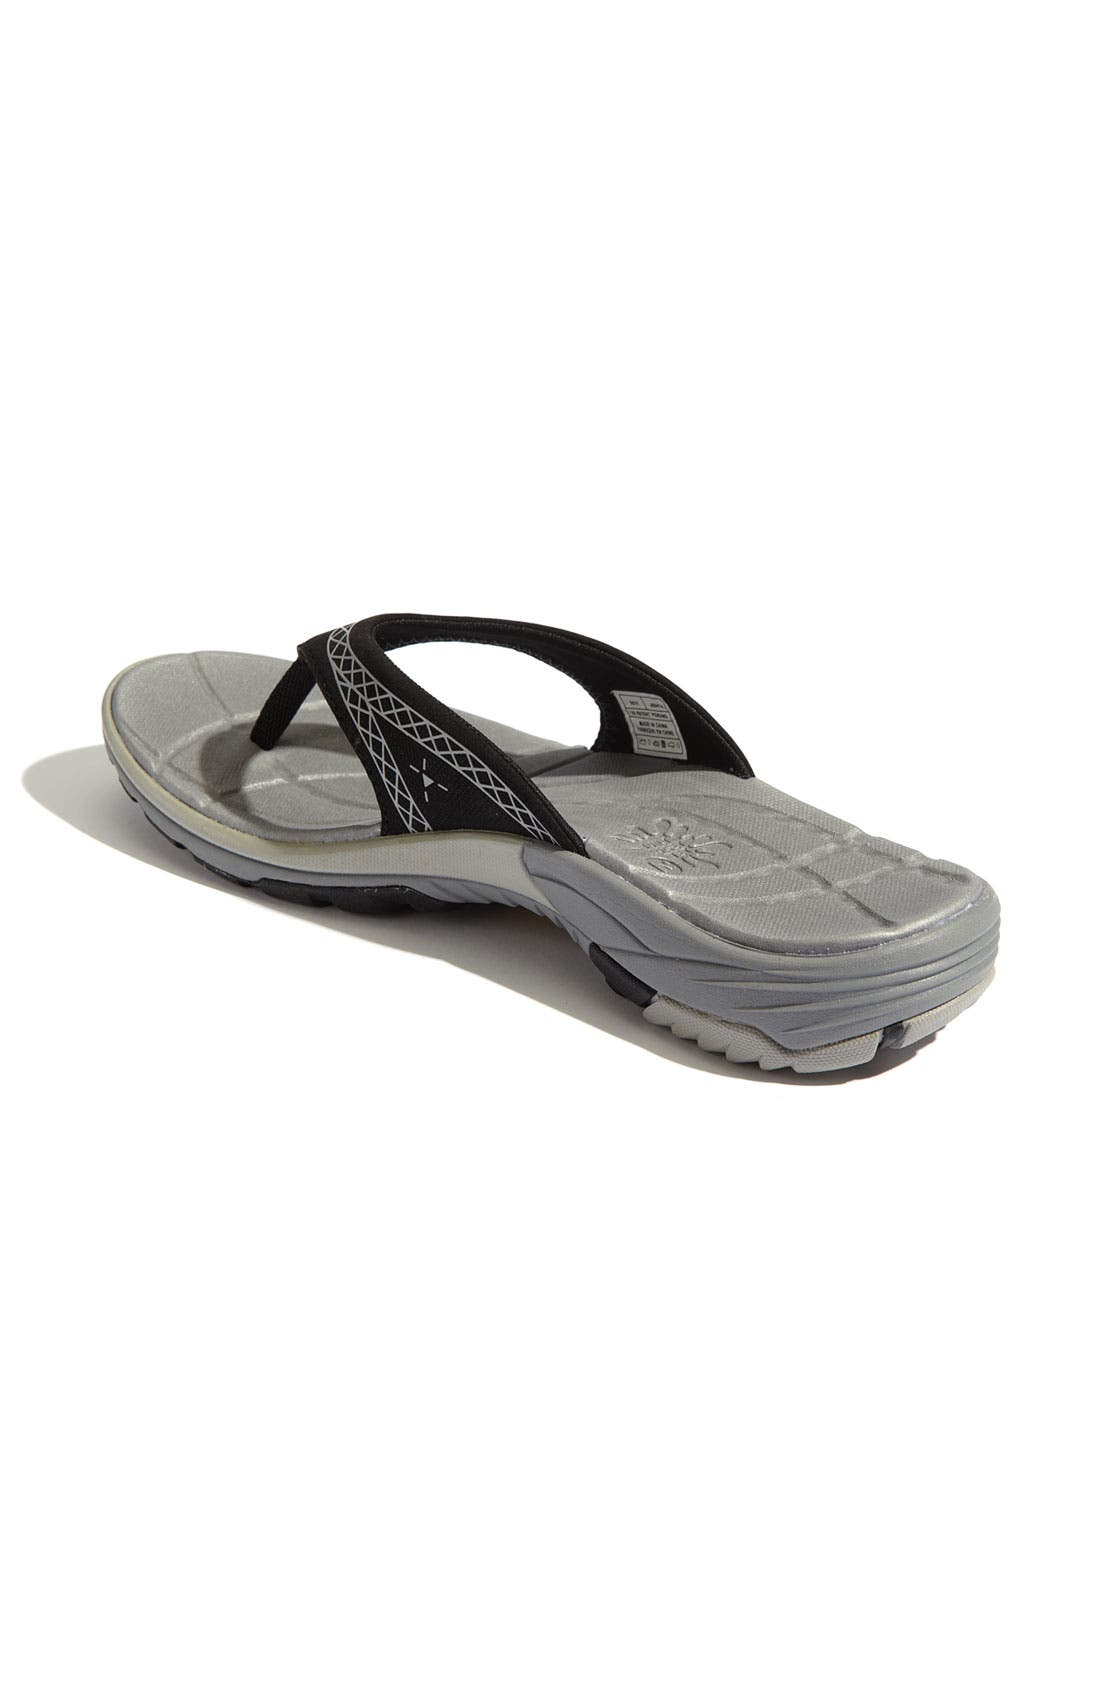 Alternate Image 2  - Merrell 'Avian' Sandal